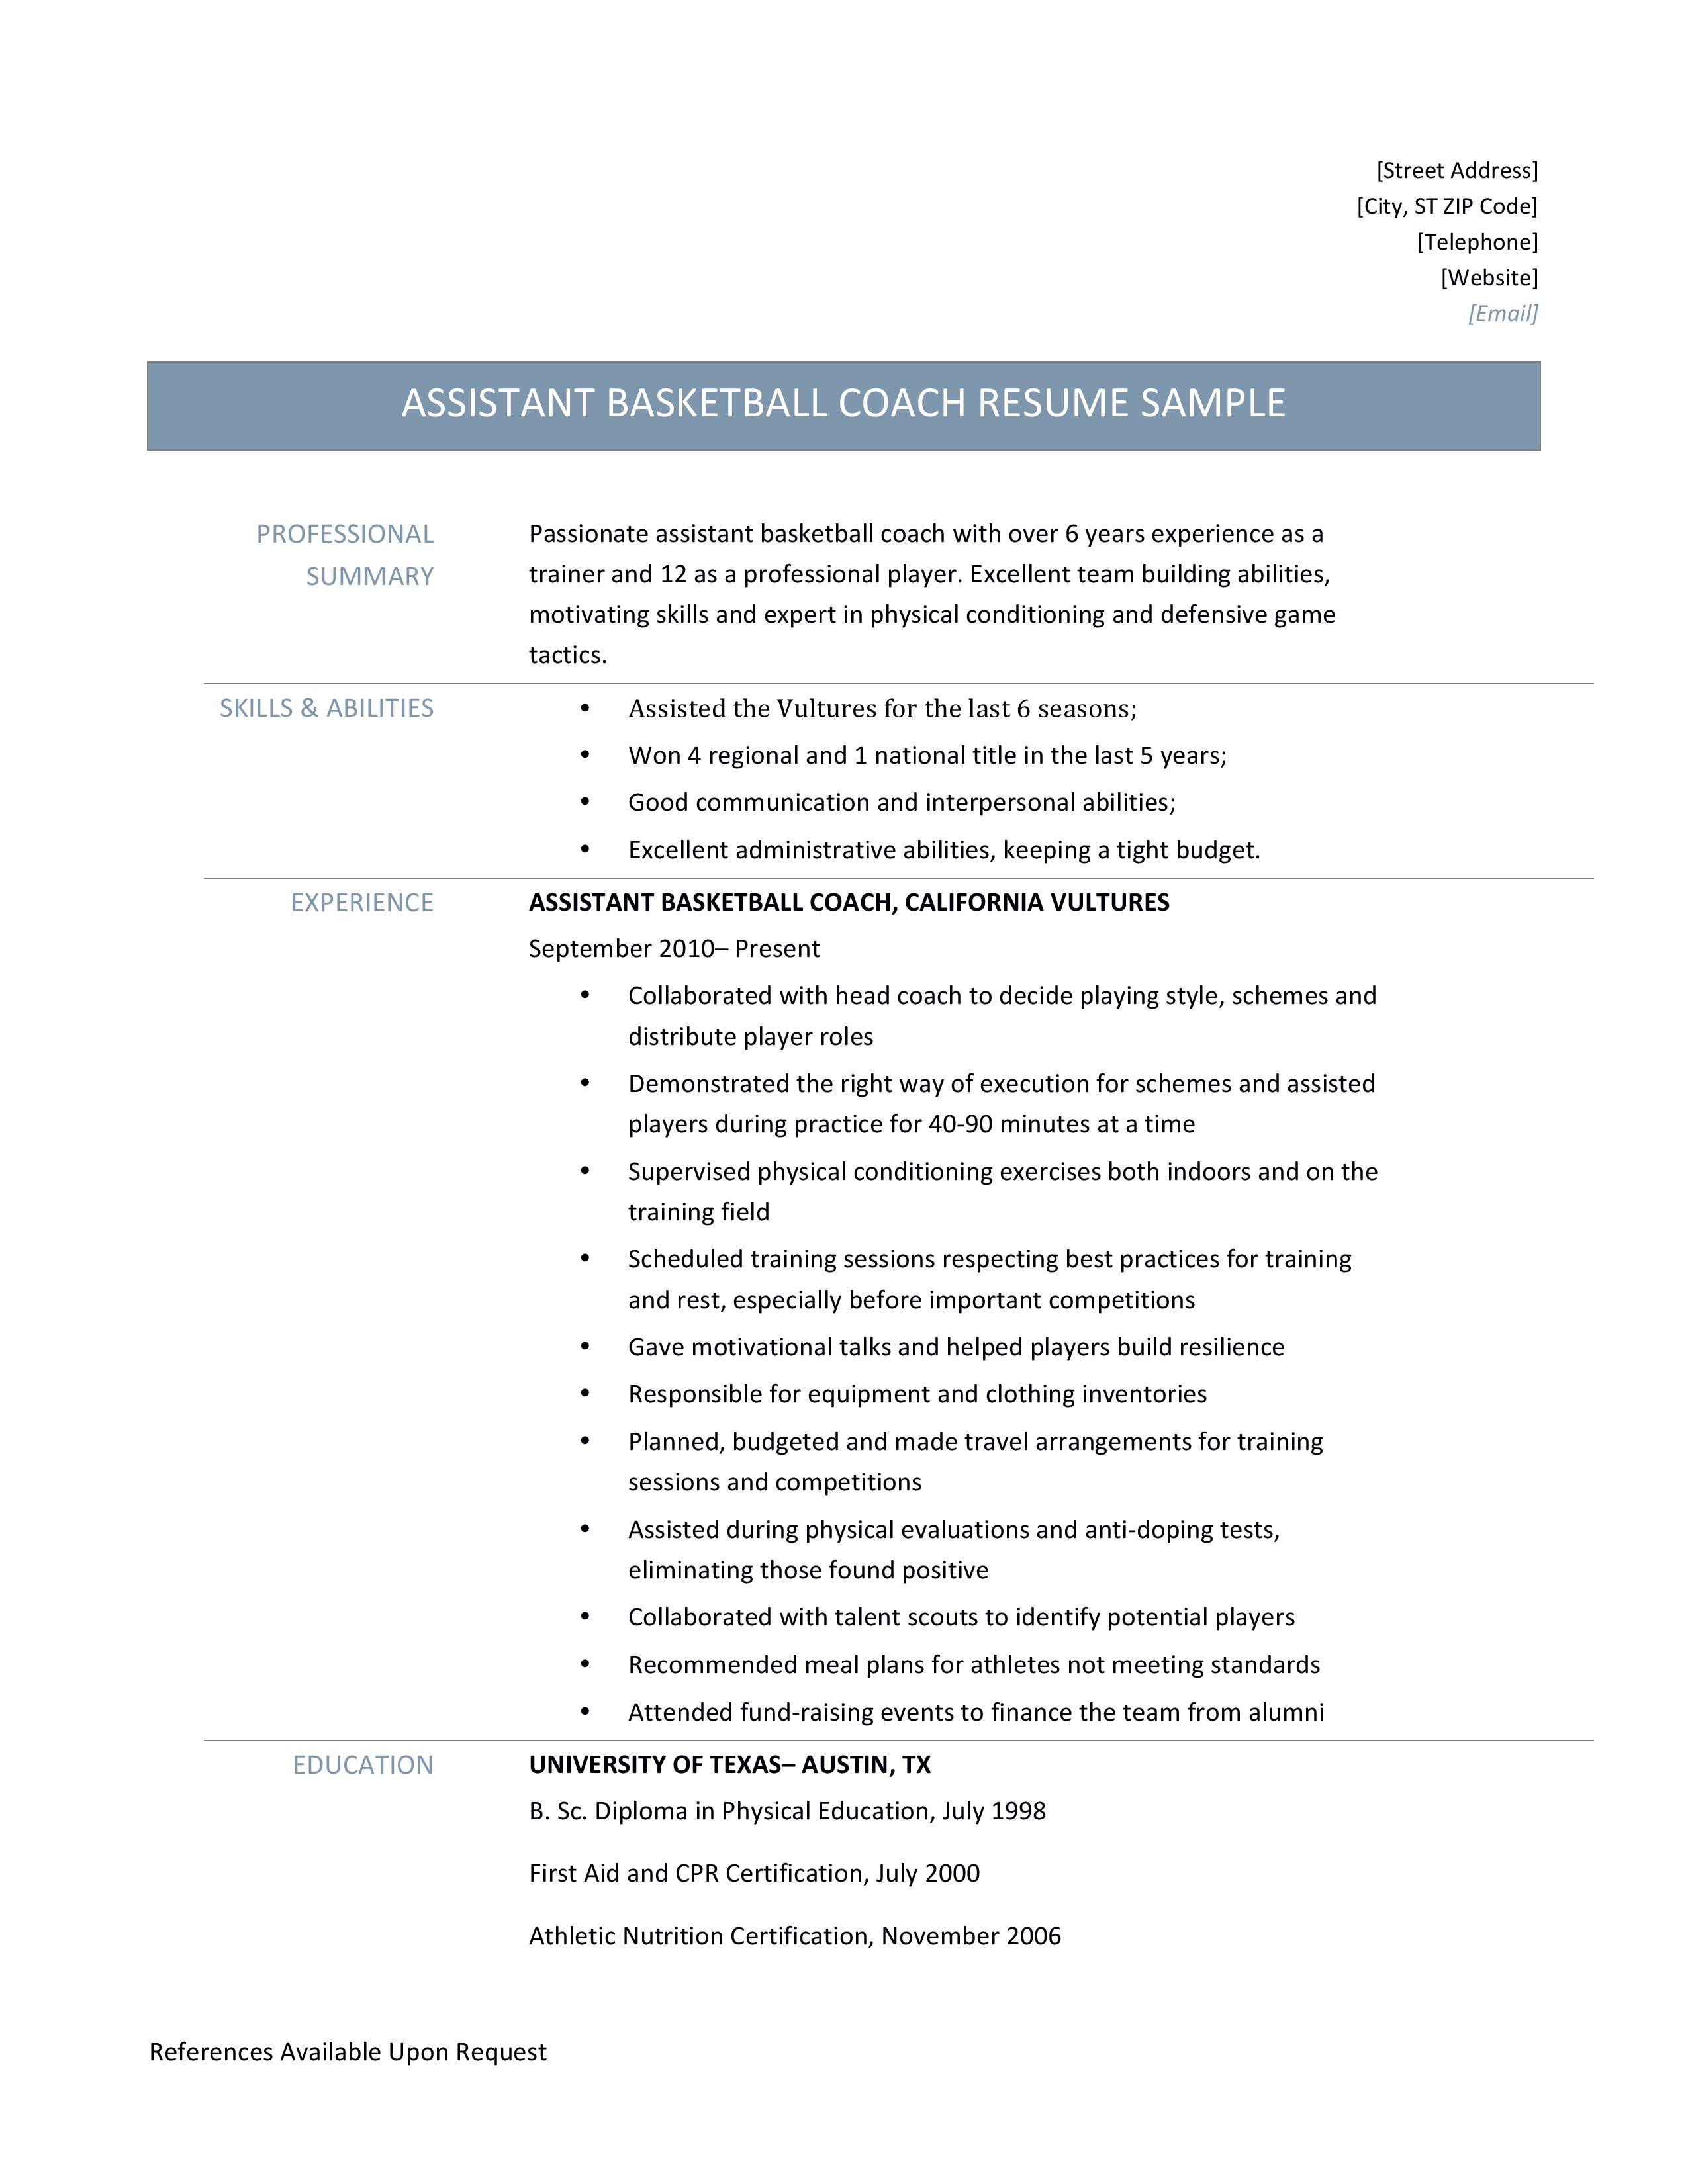 assistant basketball coach resume samples and job